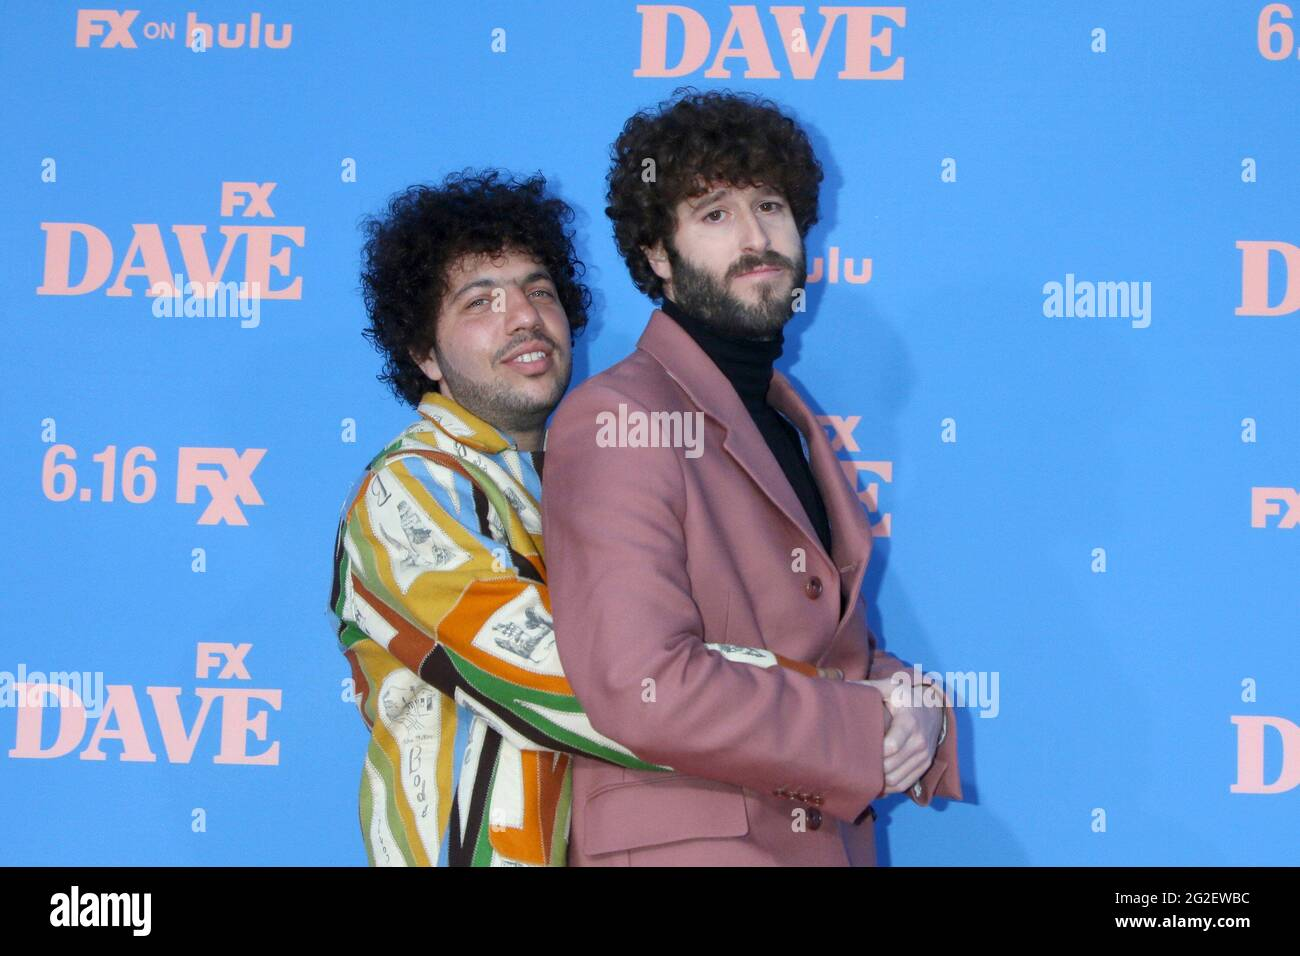 Los Angeles, CA. 10th June, 2021. Benny Blanco and Dave Burd at arrivals for DAVE Season 2 Premiere on FXX, The Greek Theater, Los Angeles, CA June 10, 2021. Credit: Priscilla Grant/Everett Collection/Alamy Live News Stock Photo